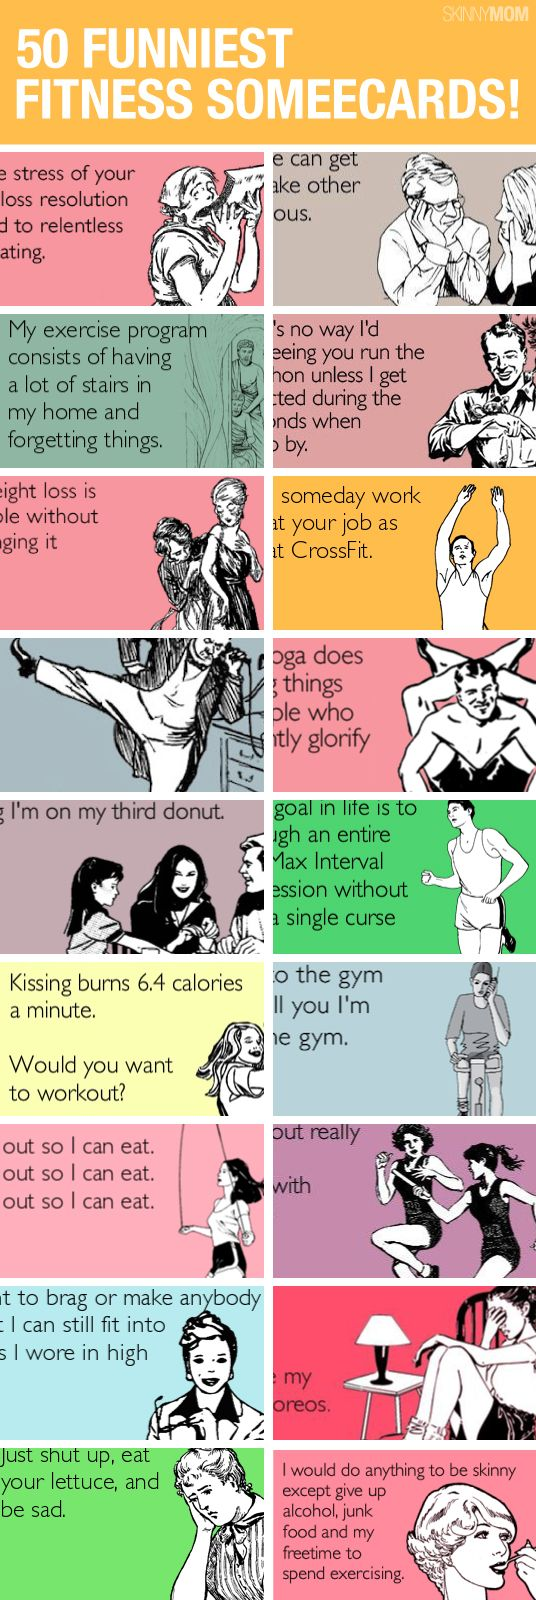 Laughed so hard at some of these!! The yoga one and the one about working out at work are totally me!